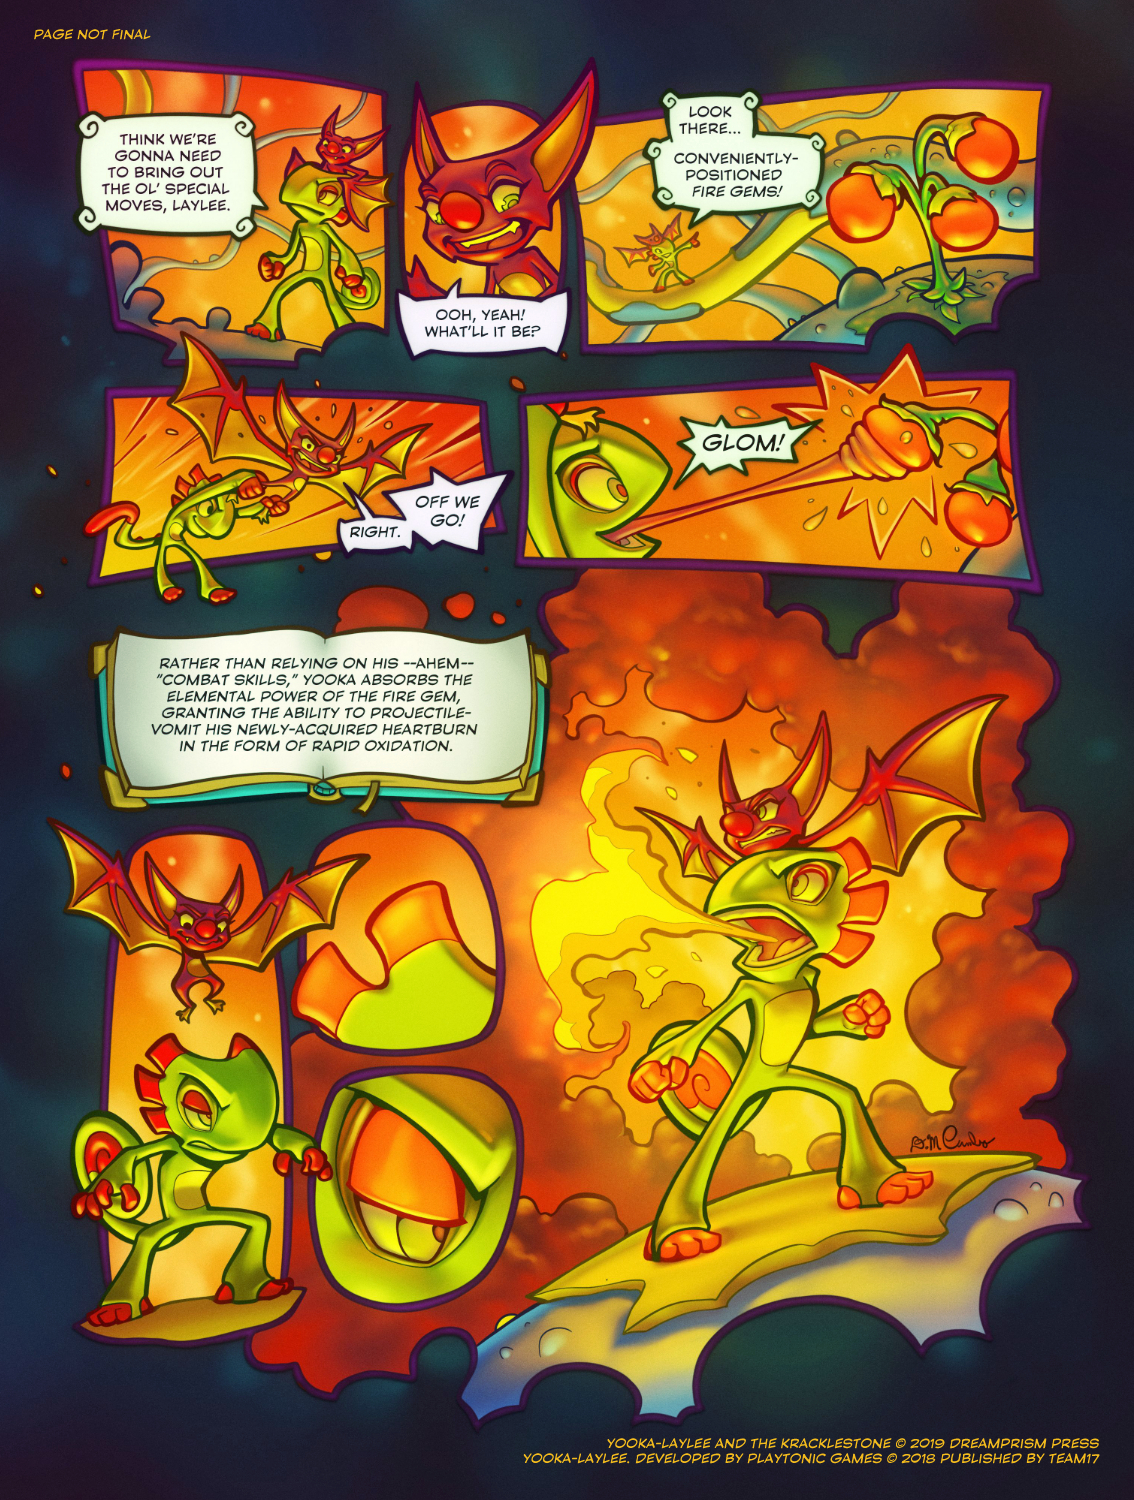 Yooka-Laylee and the Kracklestone Dreamprism Press 6.jpg